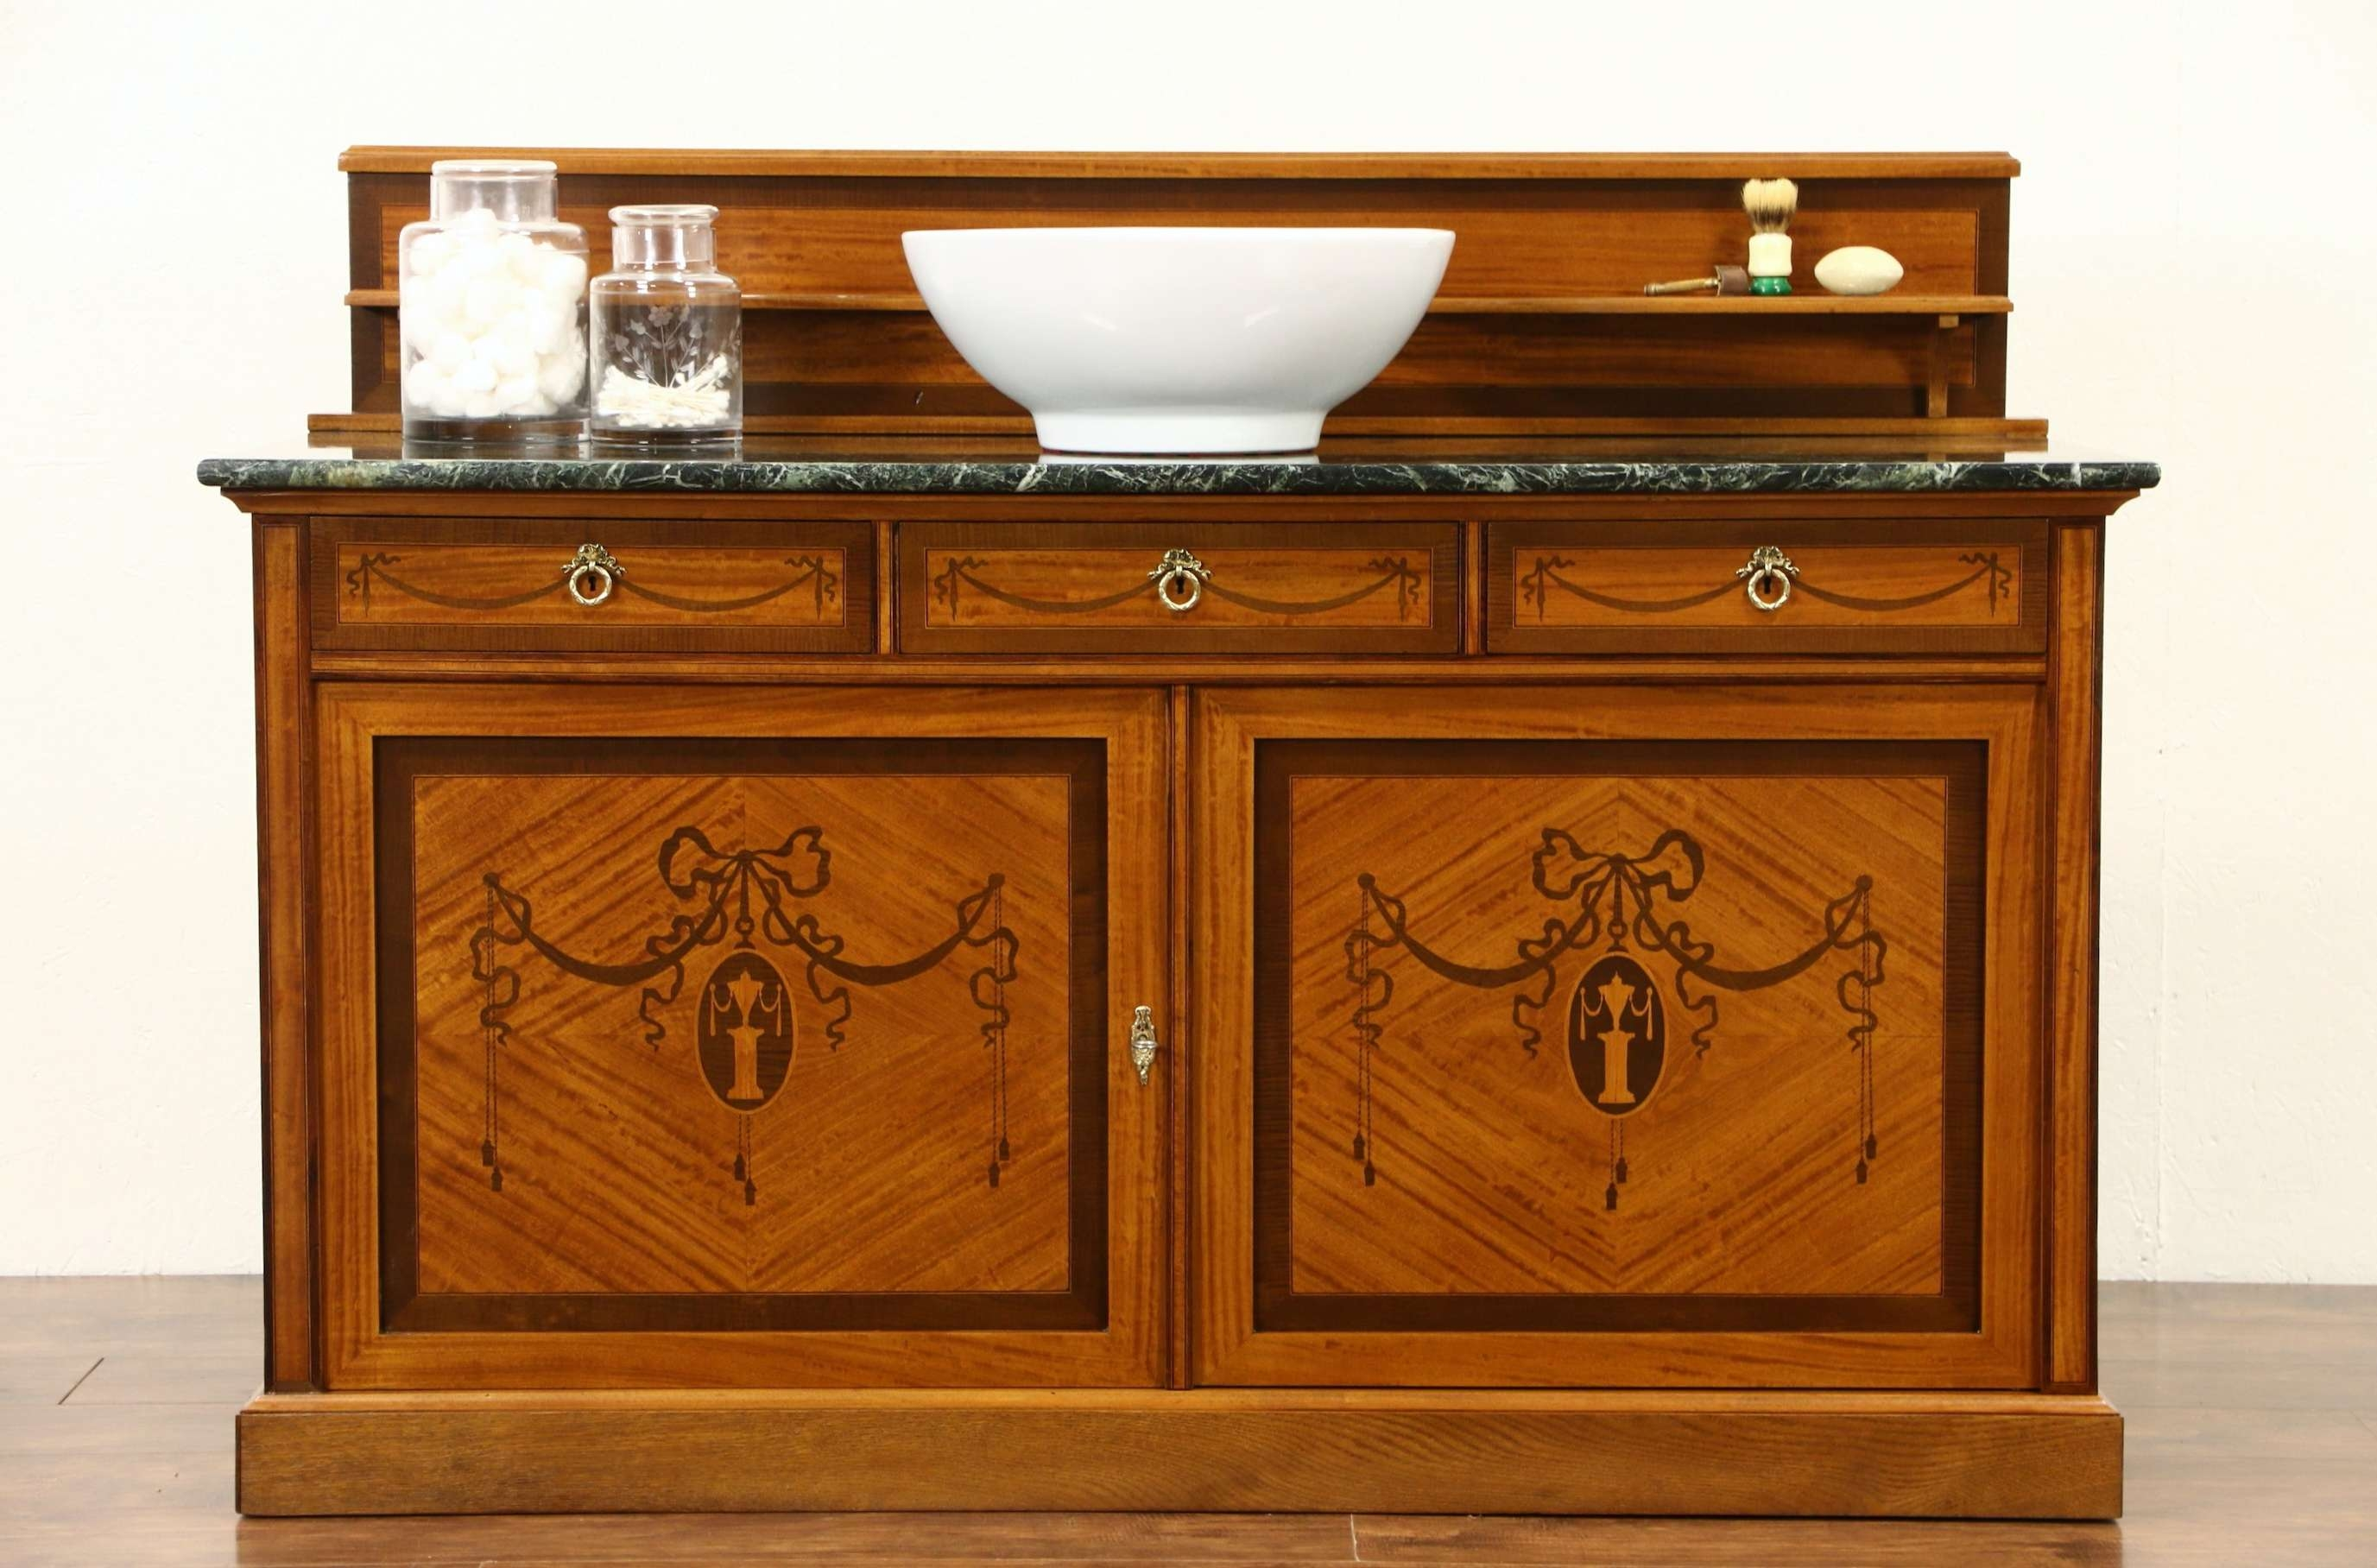 Sold – French 1915 Antique Marble Top Sideboard, Server, Bar Or Pertaining To Antique Marble Top Sideboards (View 16 of 20)